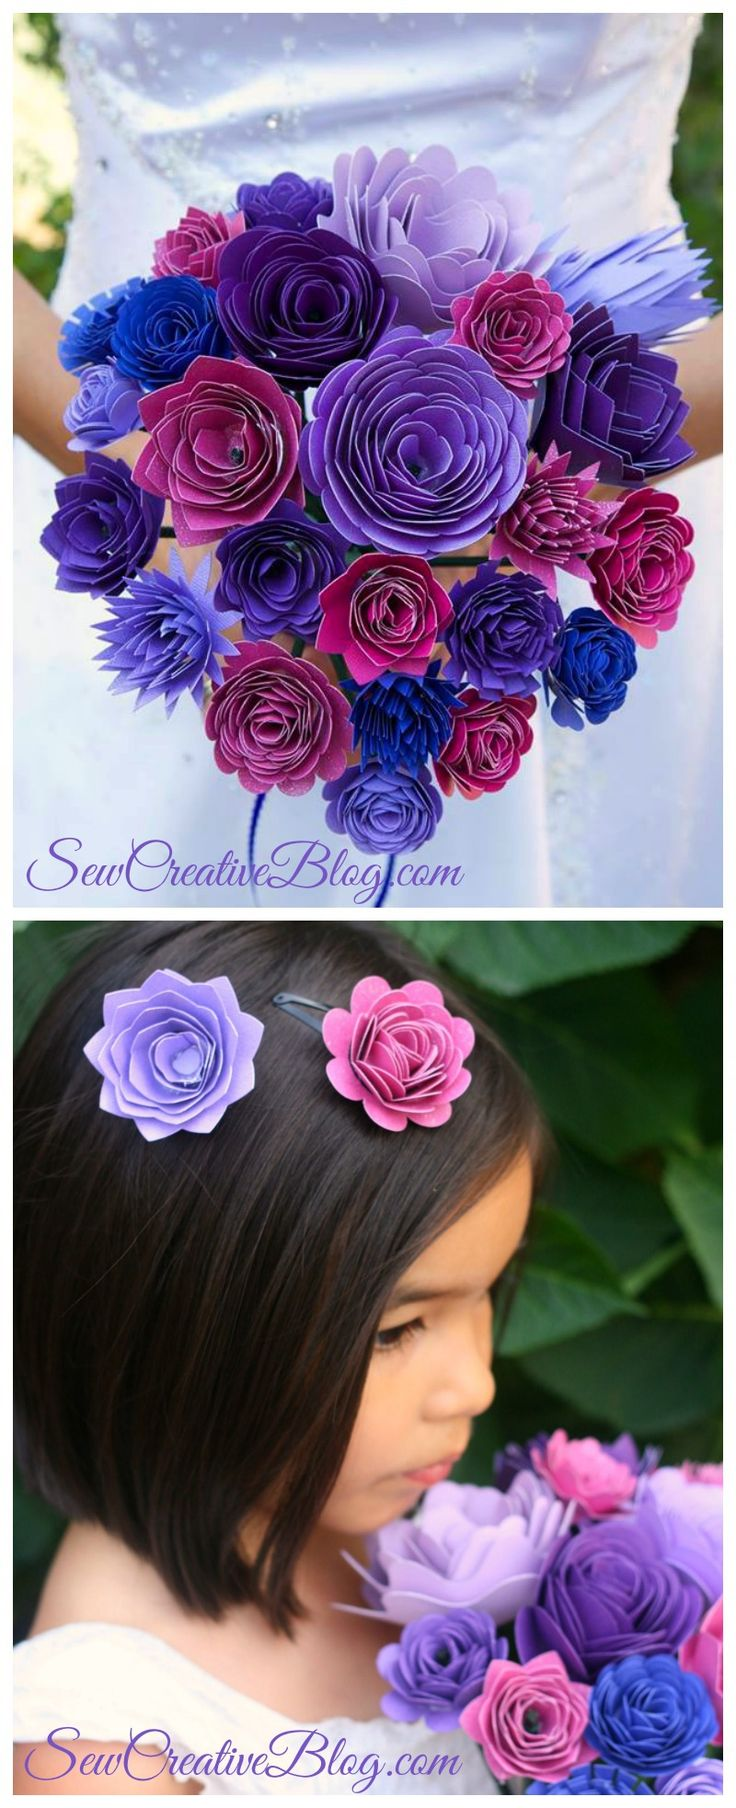 Beautiful Wedding Bouquet and Flower Girl Barrettes made from paper on the Cricut Explore. Project by Sew Creative